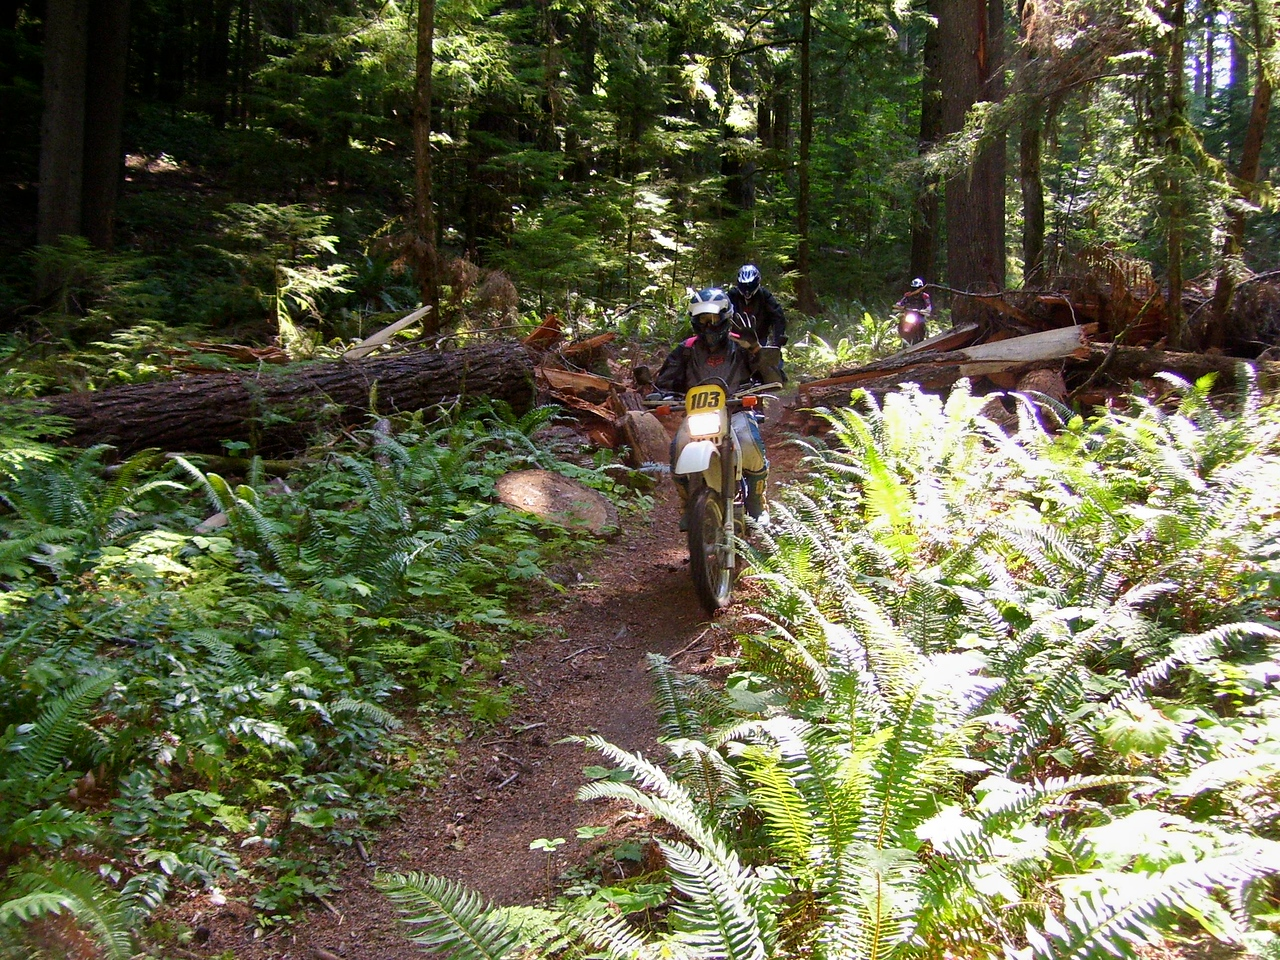 Nicest trail in the GPNF, Krause Ridge #275